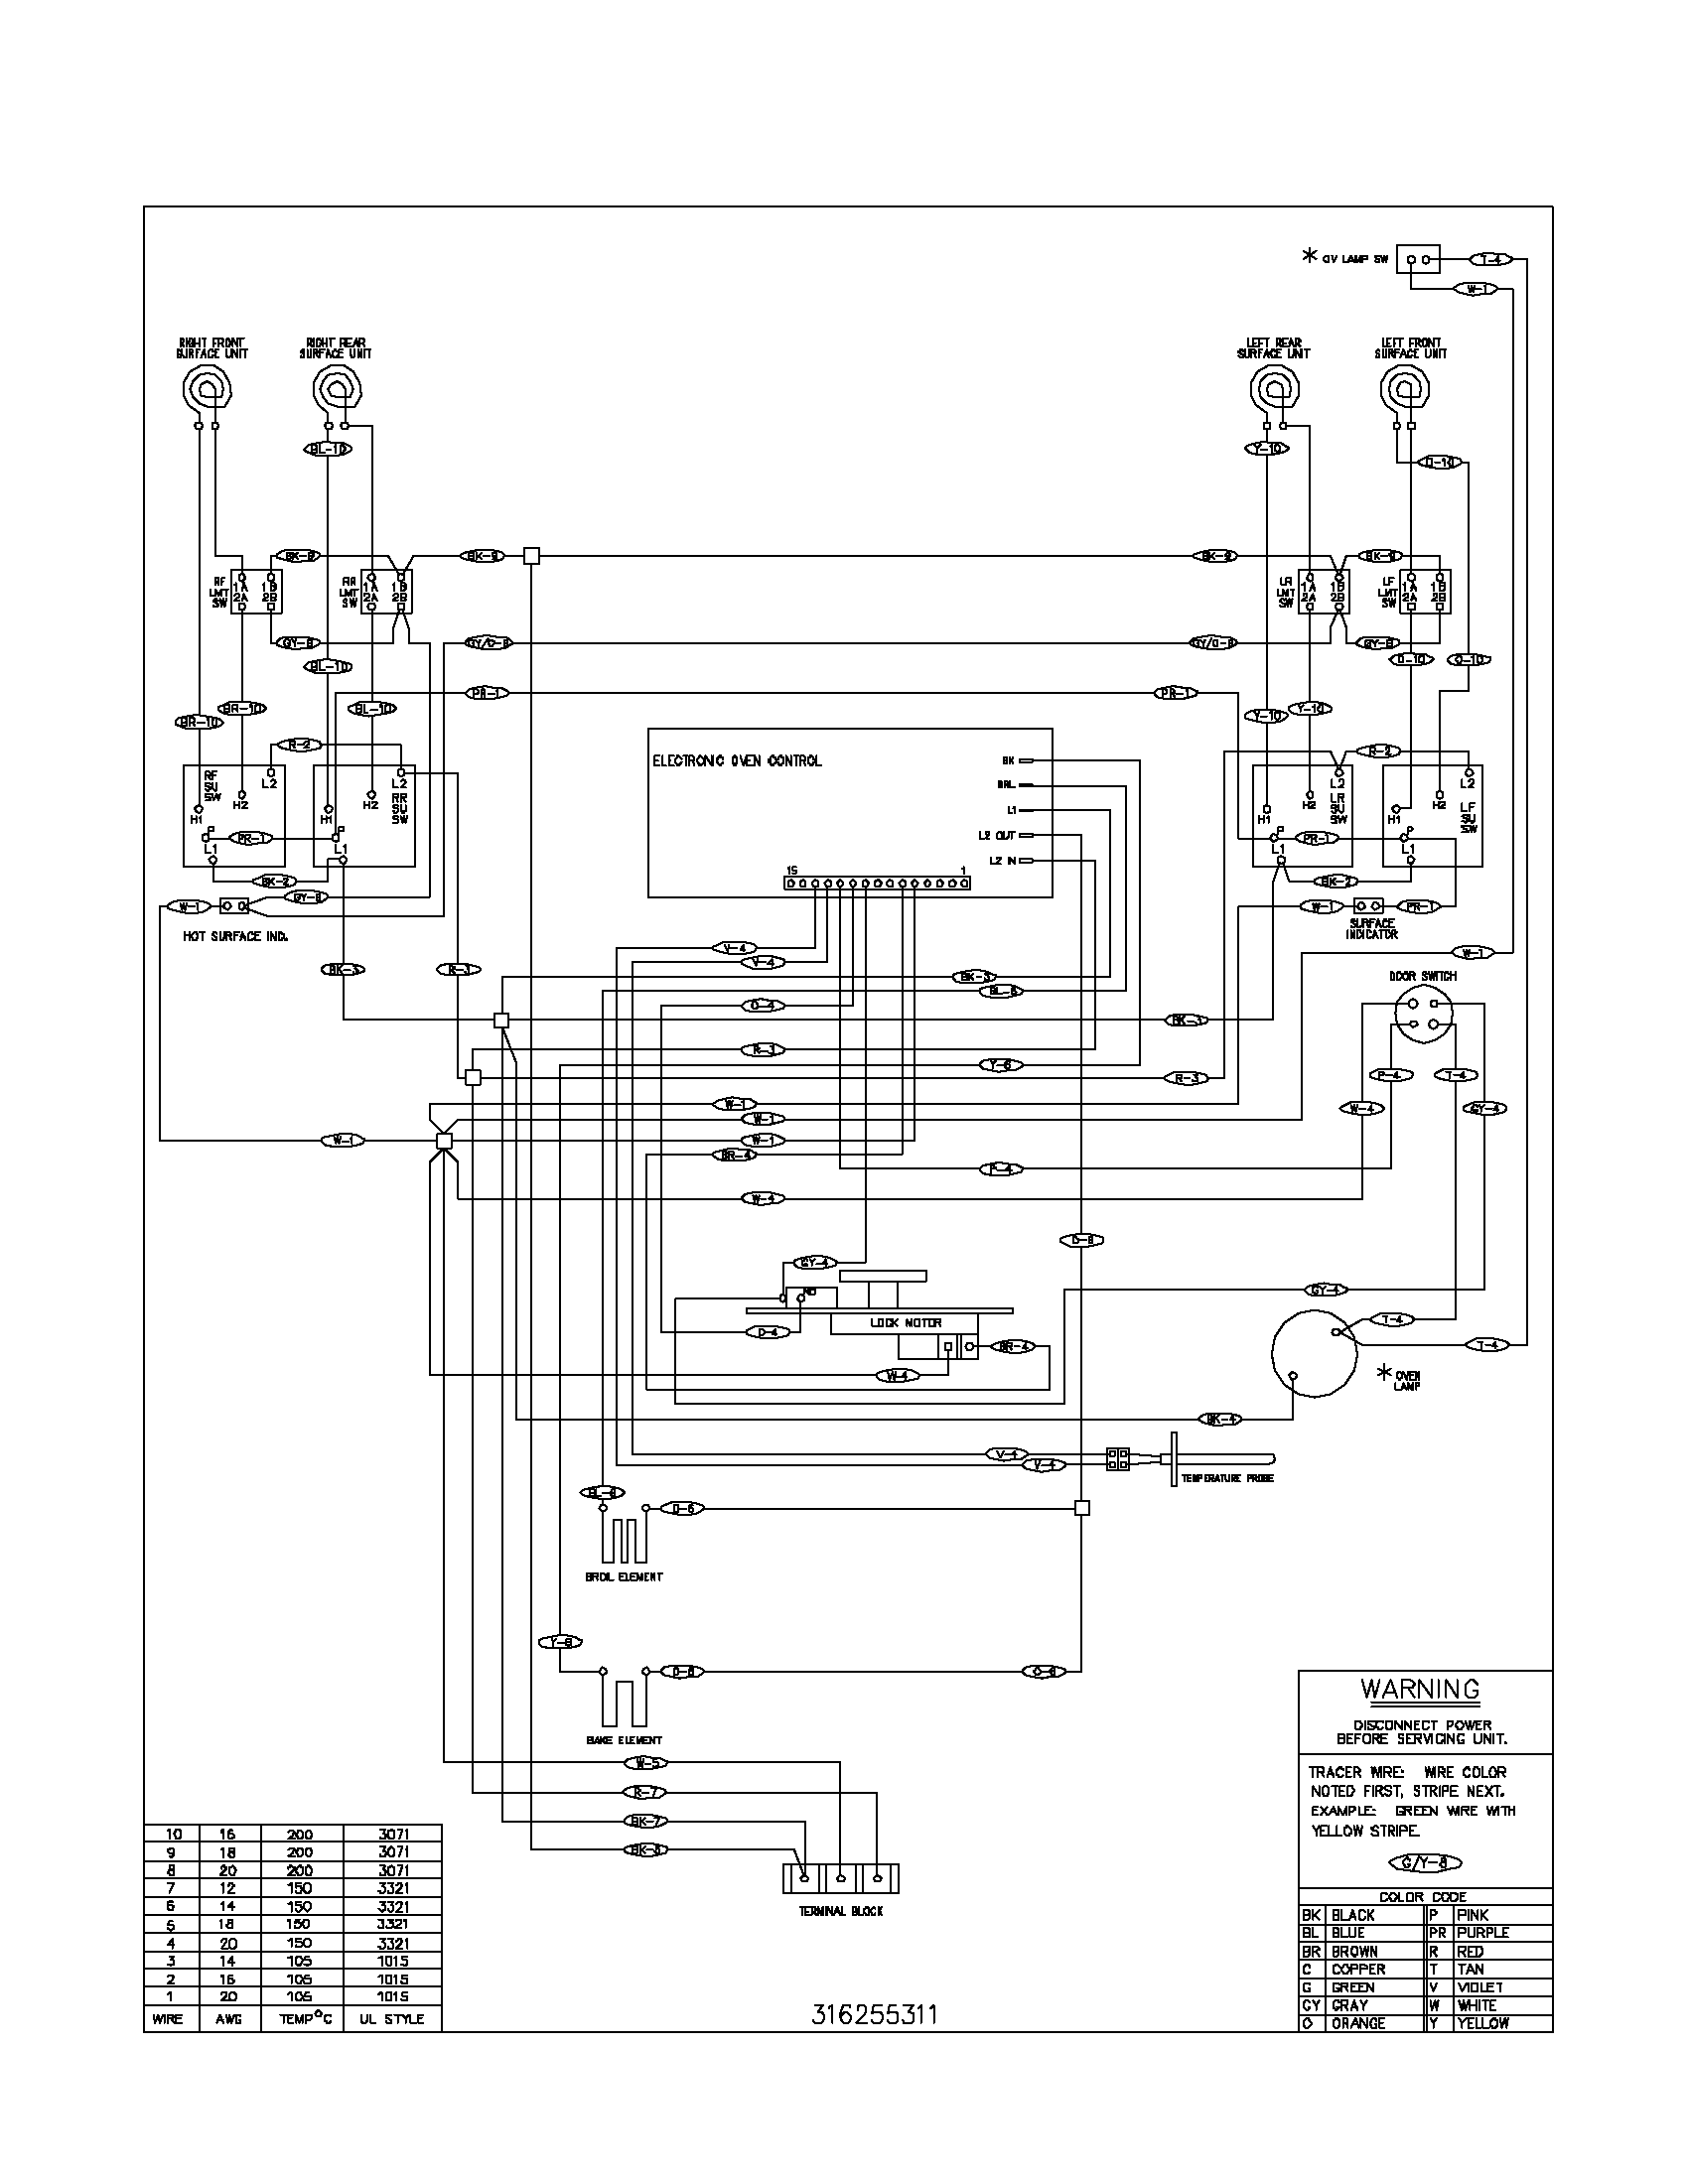 Won Door Wiring Diagrams - Auto Electrical Wiring Diagram